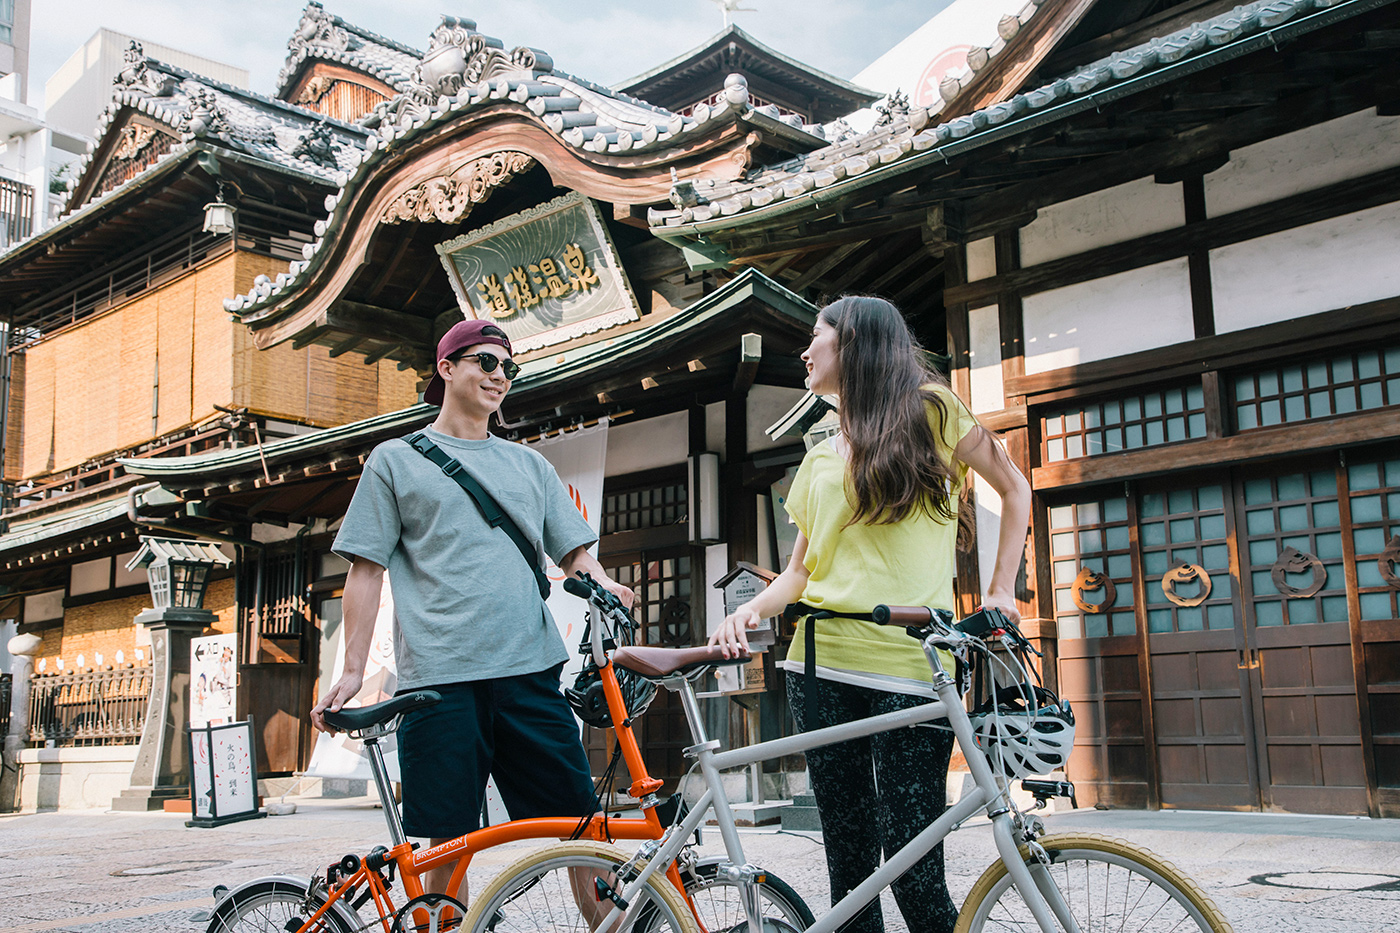 Basic Cycling Tips to Make Your Trip to Matsuyama and the Dogo Onsen More Enjoyable!